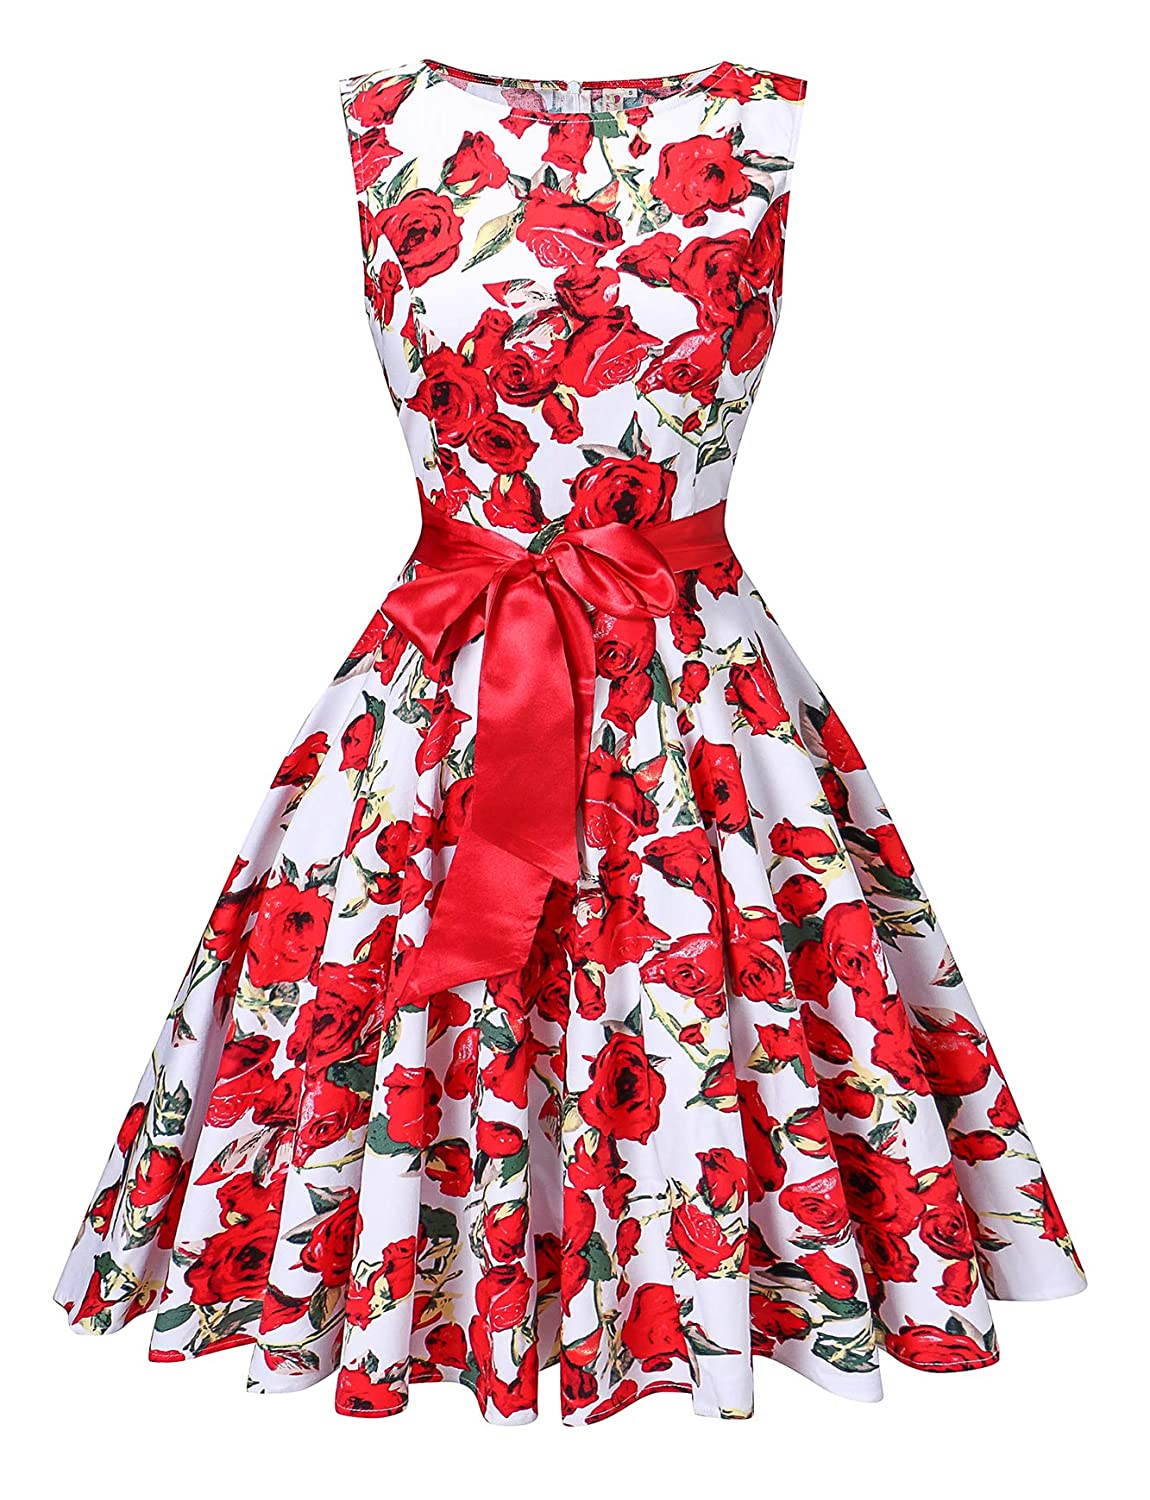 White and Red Floral V Fashion Women's Retro Swing Rockabilly Vintage Sleeveless Audrey Hepburn Dress